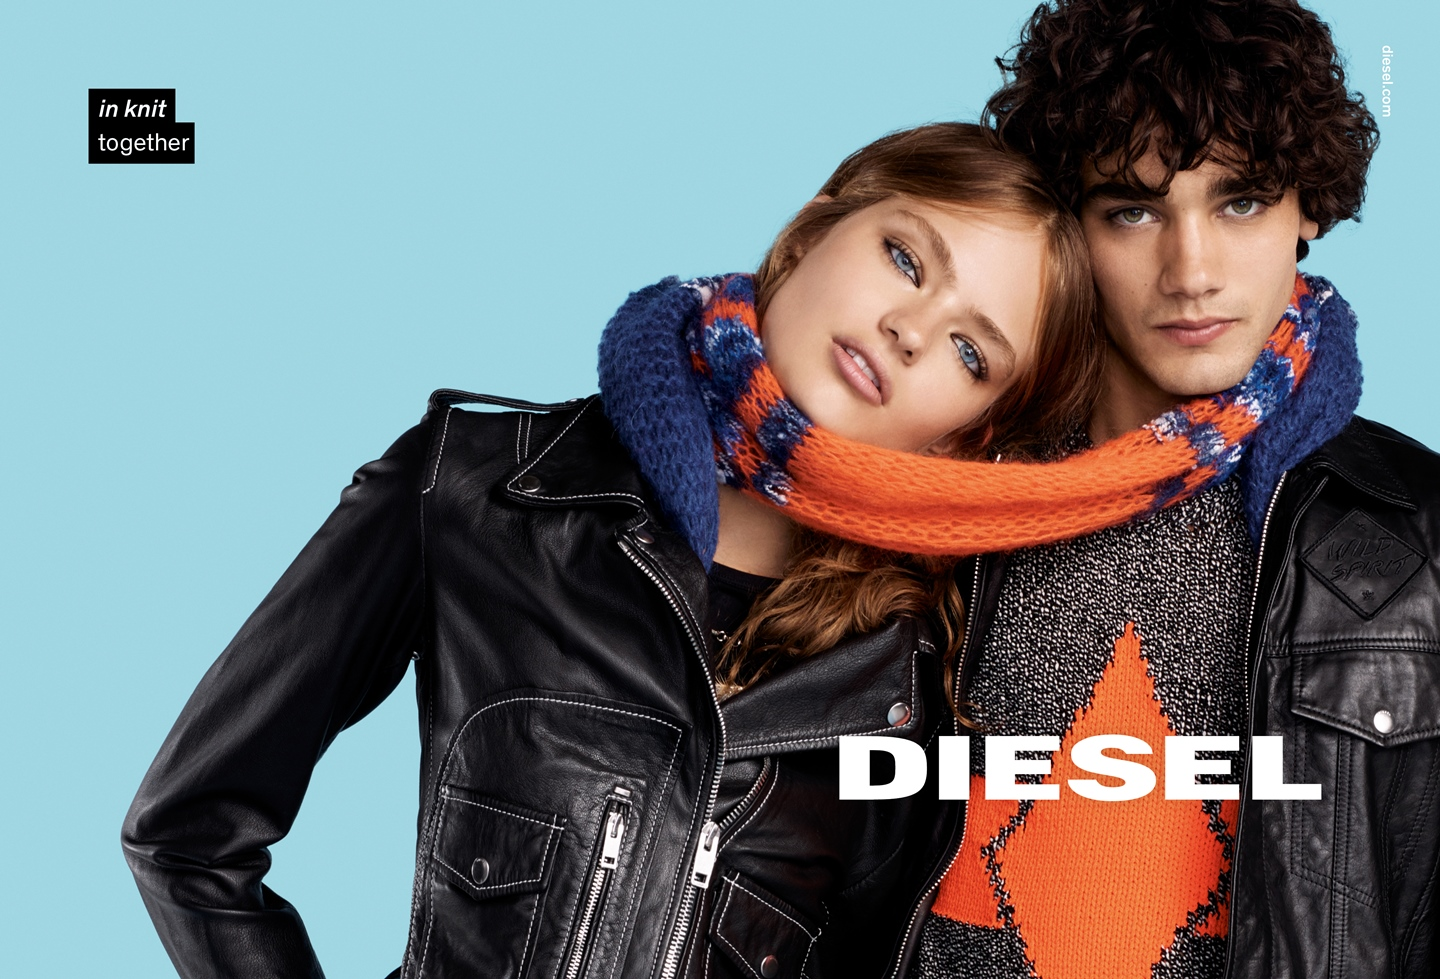 289209_623203_diesel_campaign_fw16_atl_adventure_couple_dps_highres